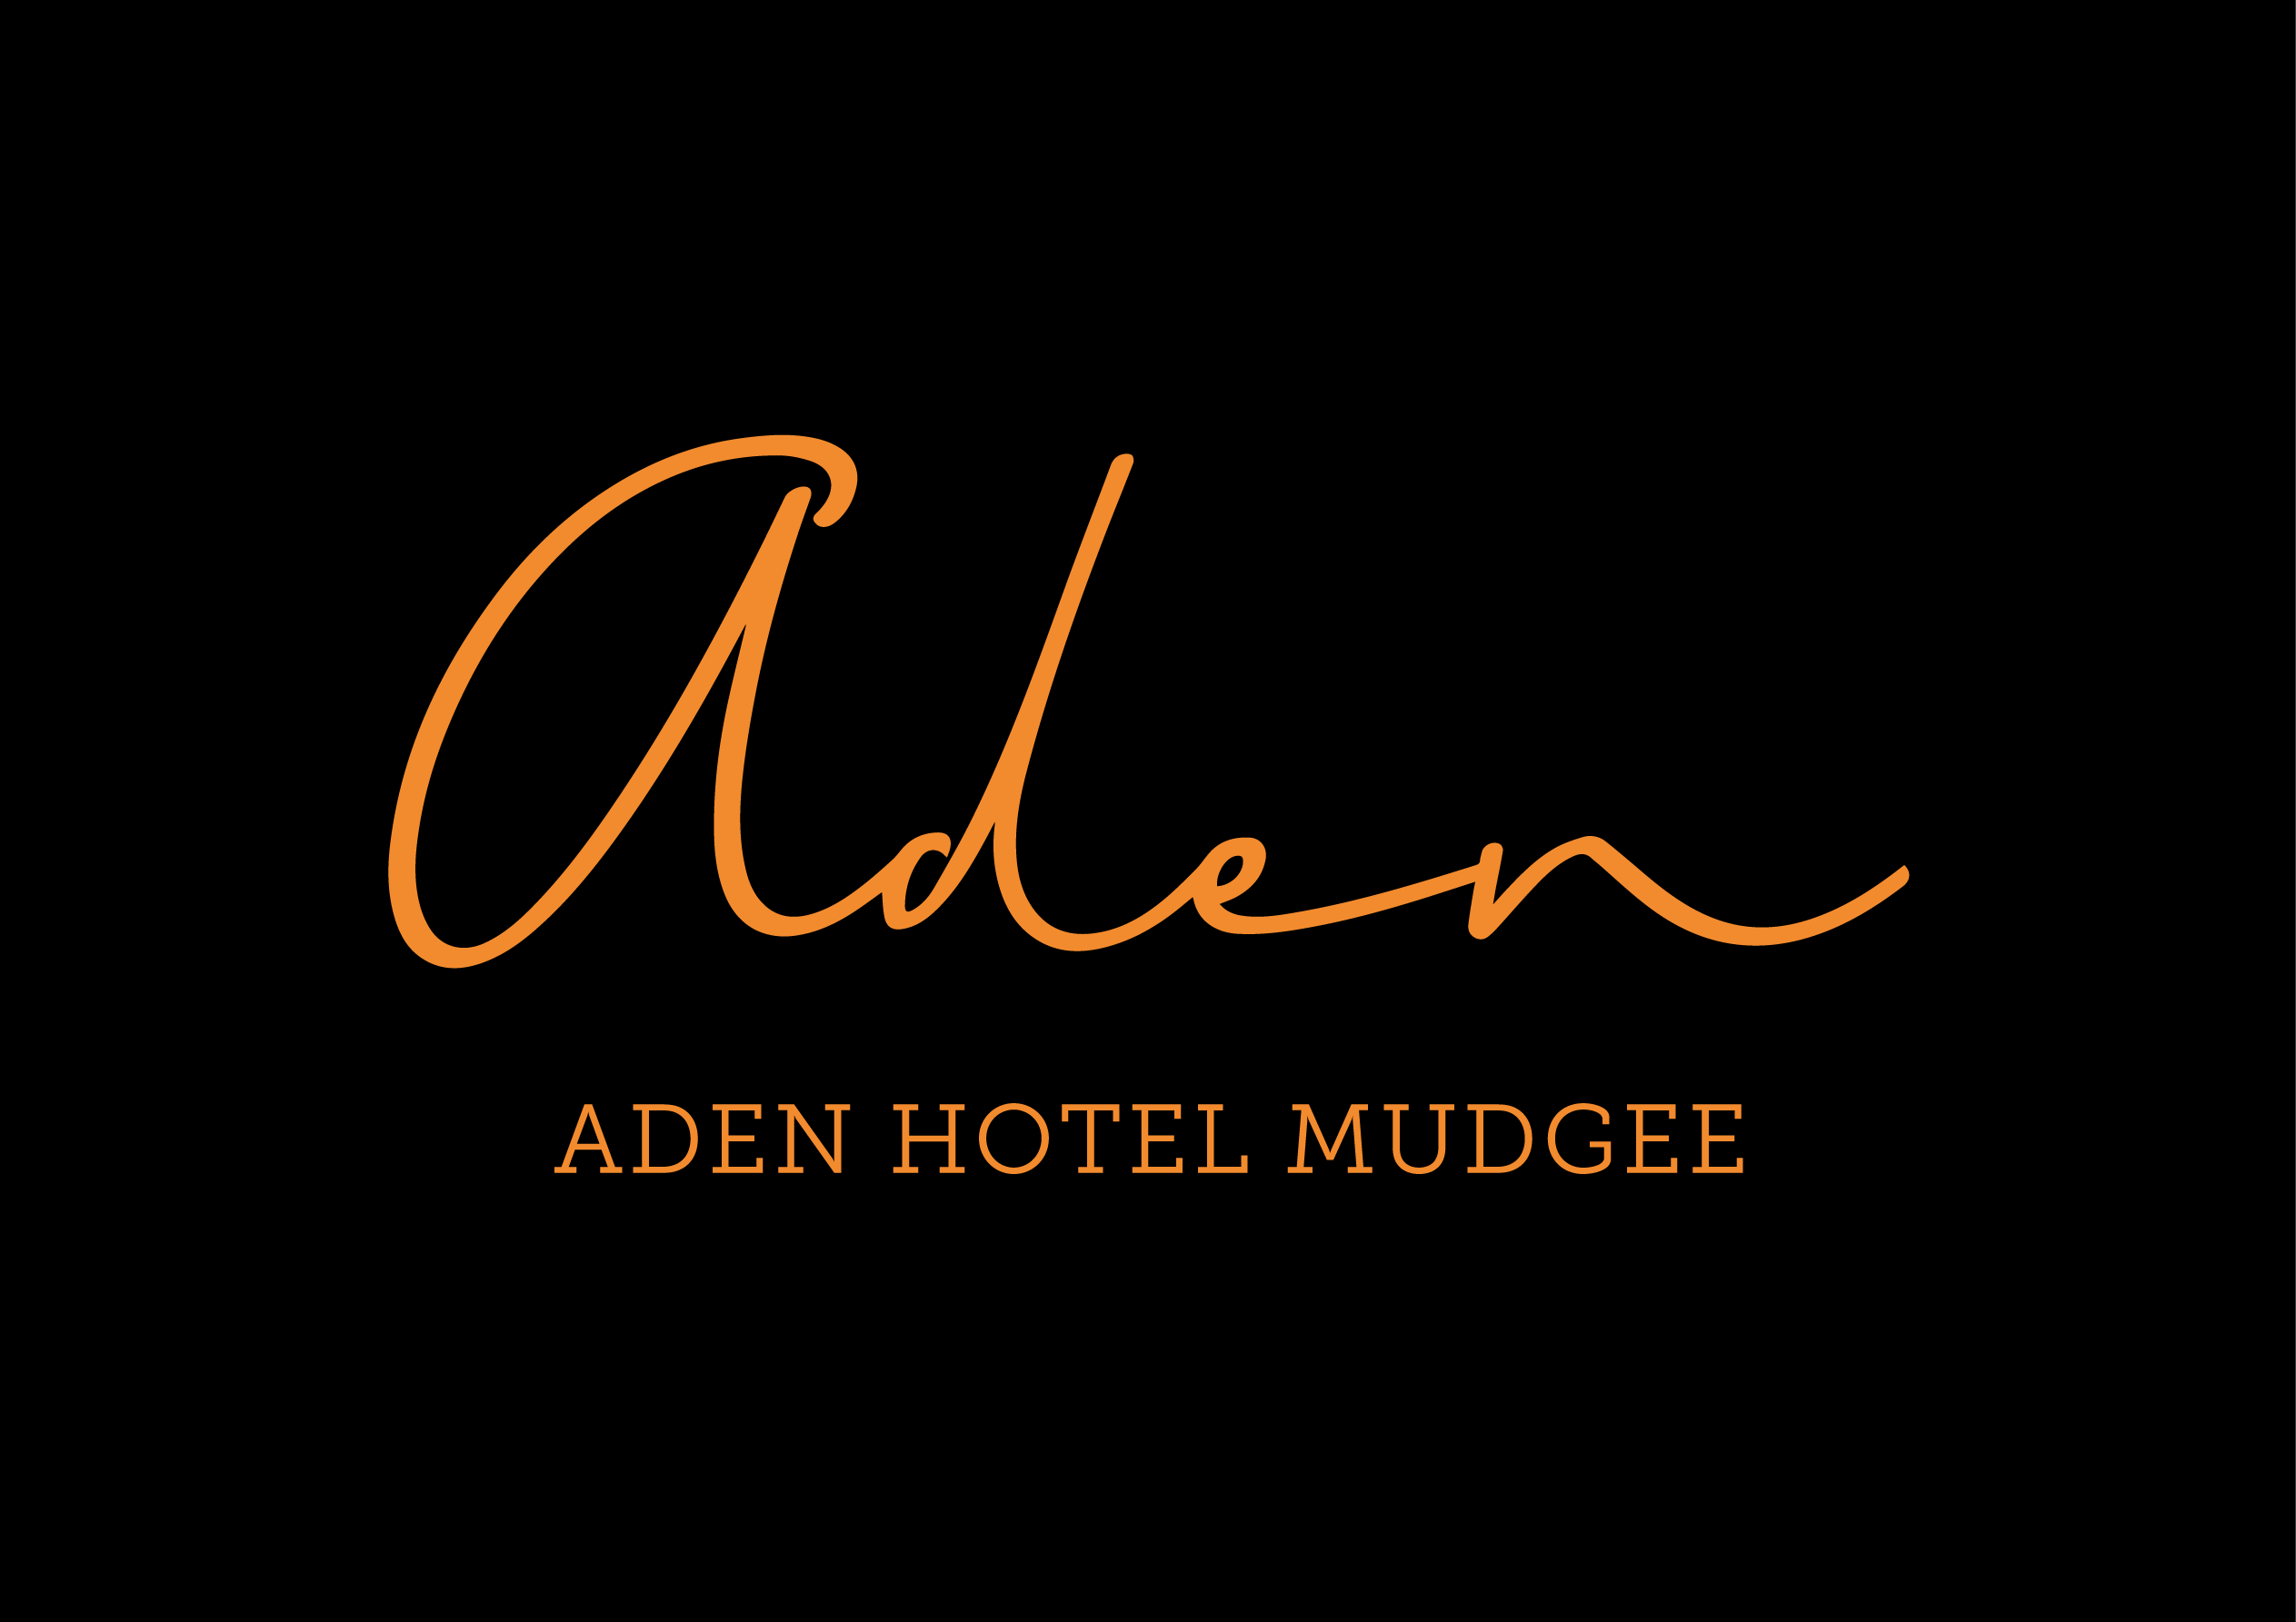 Comfort Inn Aden Hotel Mudgee - Accommodation Brisbane